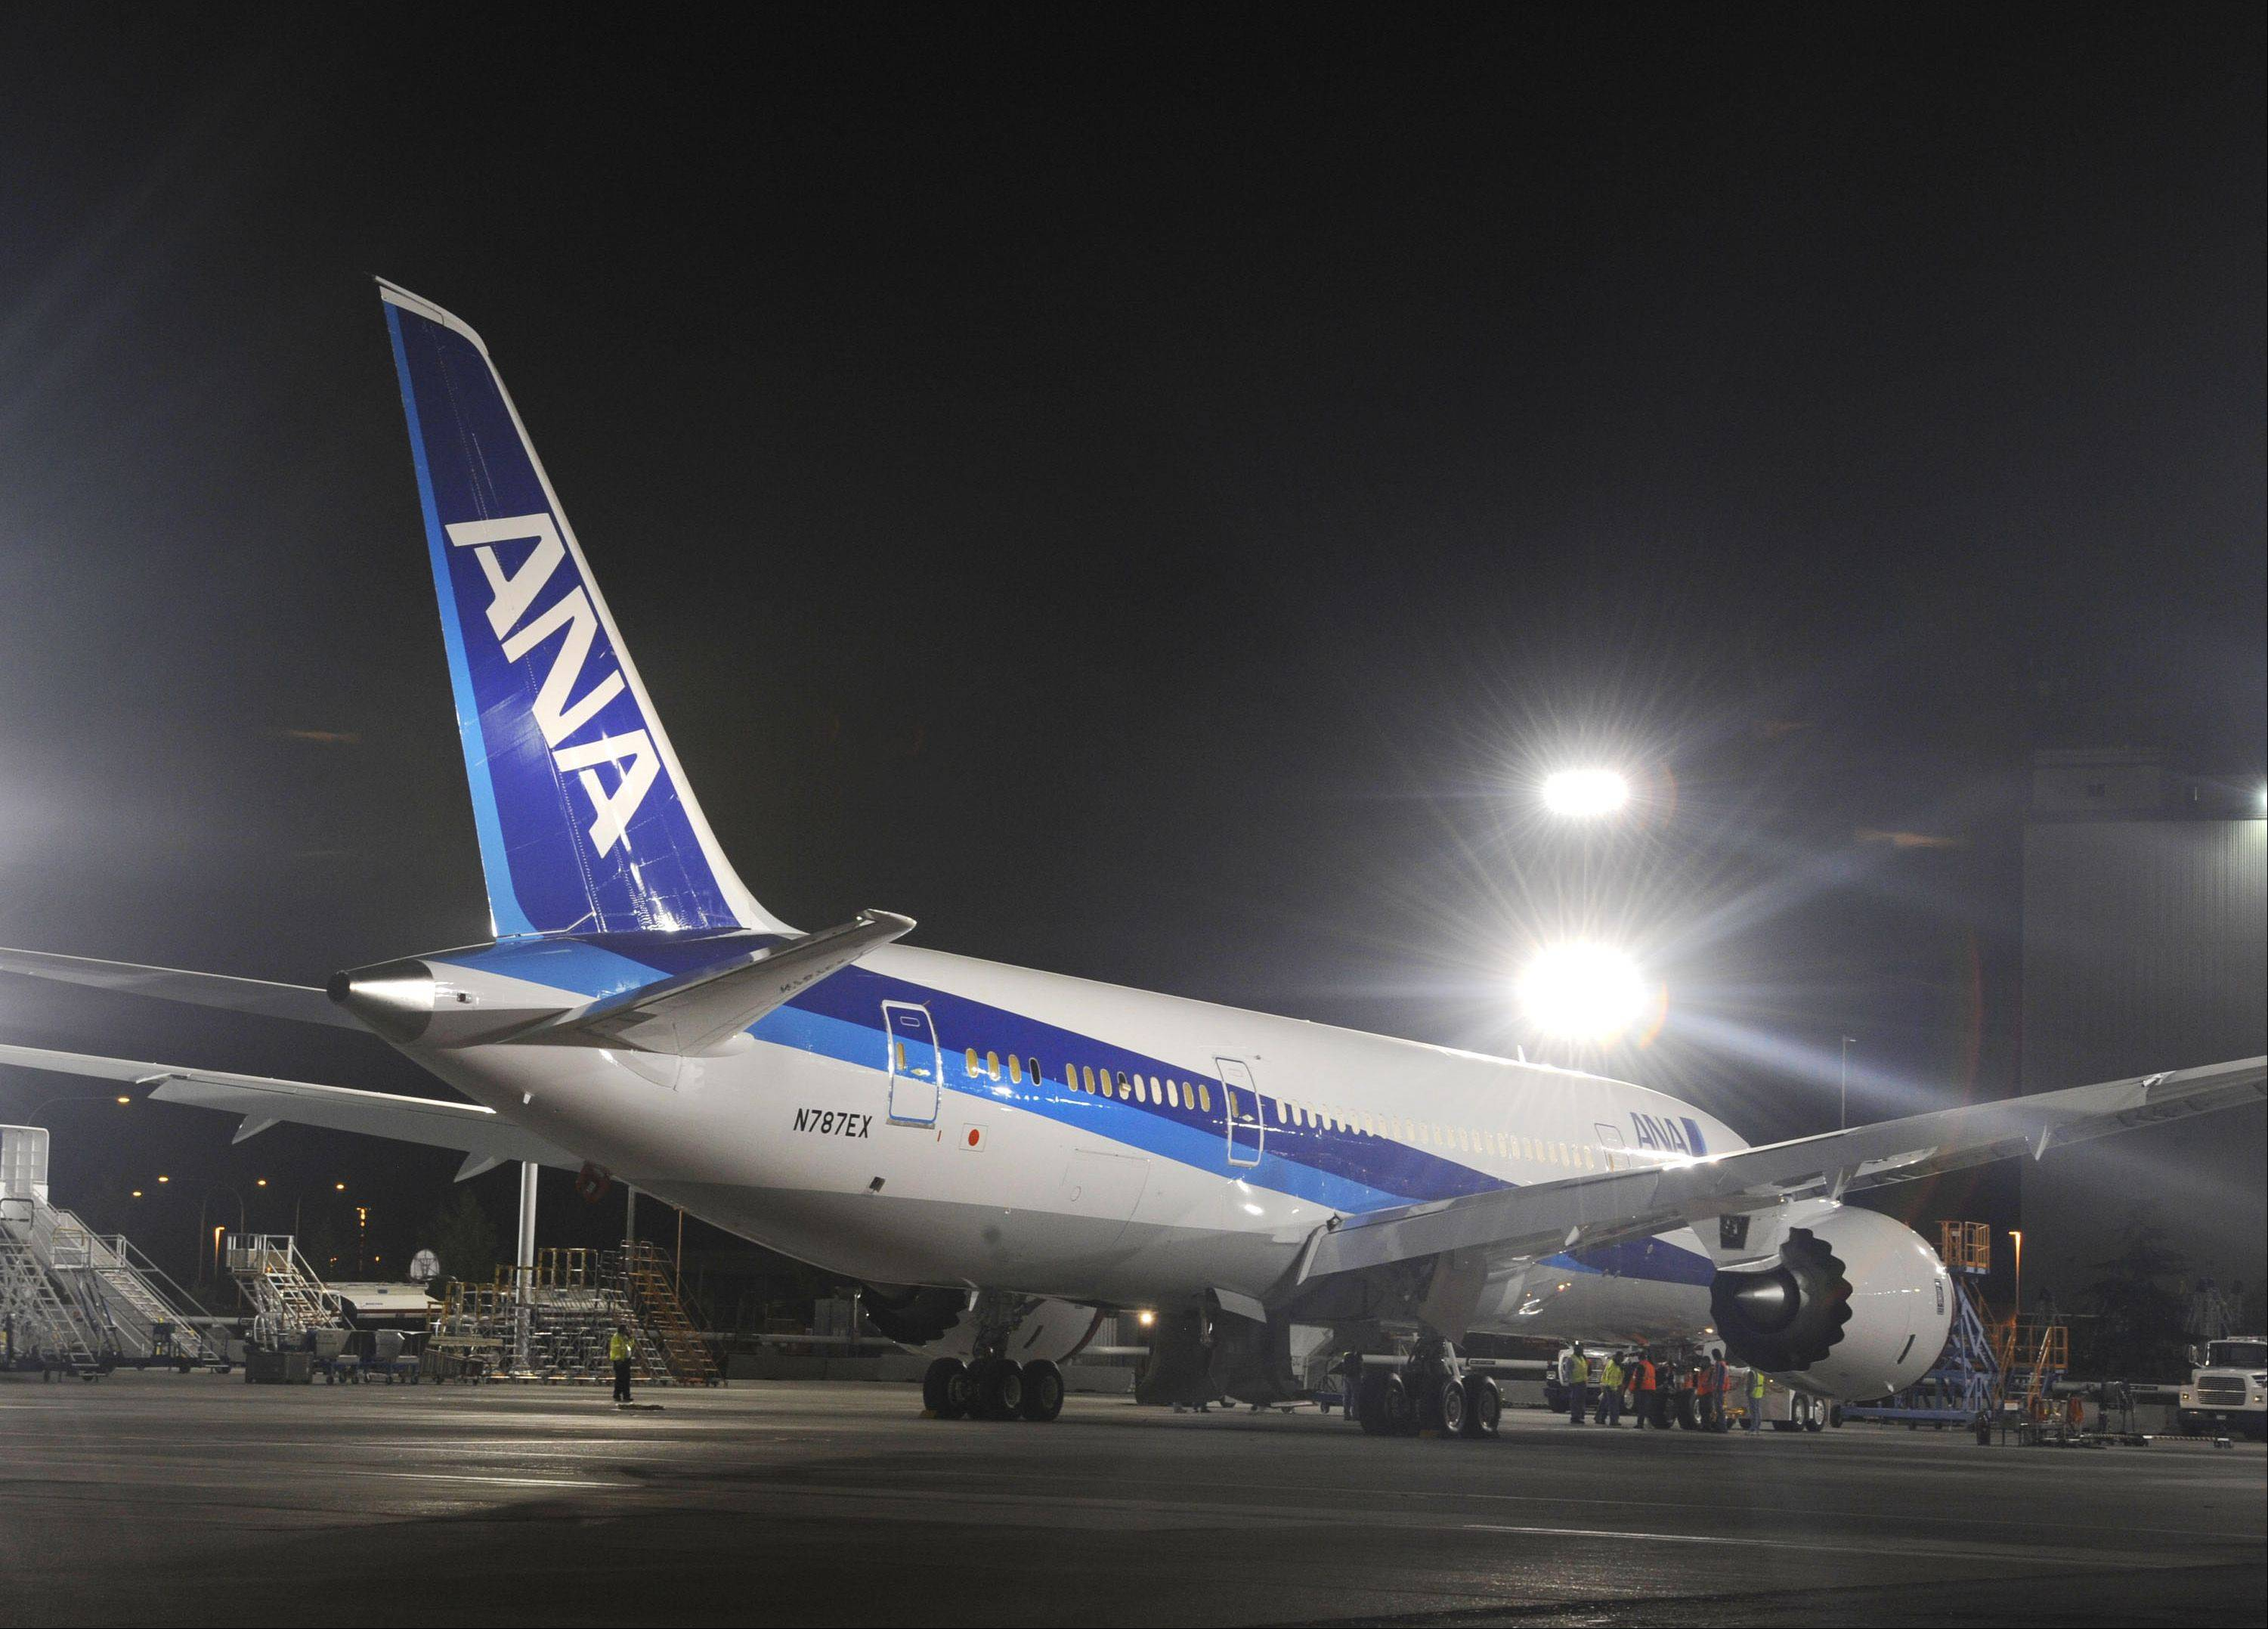 All Nippon Airways and Japan Airlines said Wednesday they are checking their Boeing 787 fleets for wiring problems unrelated to battery defects that plagued the aircraft earlier this year.